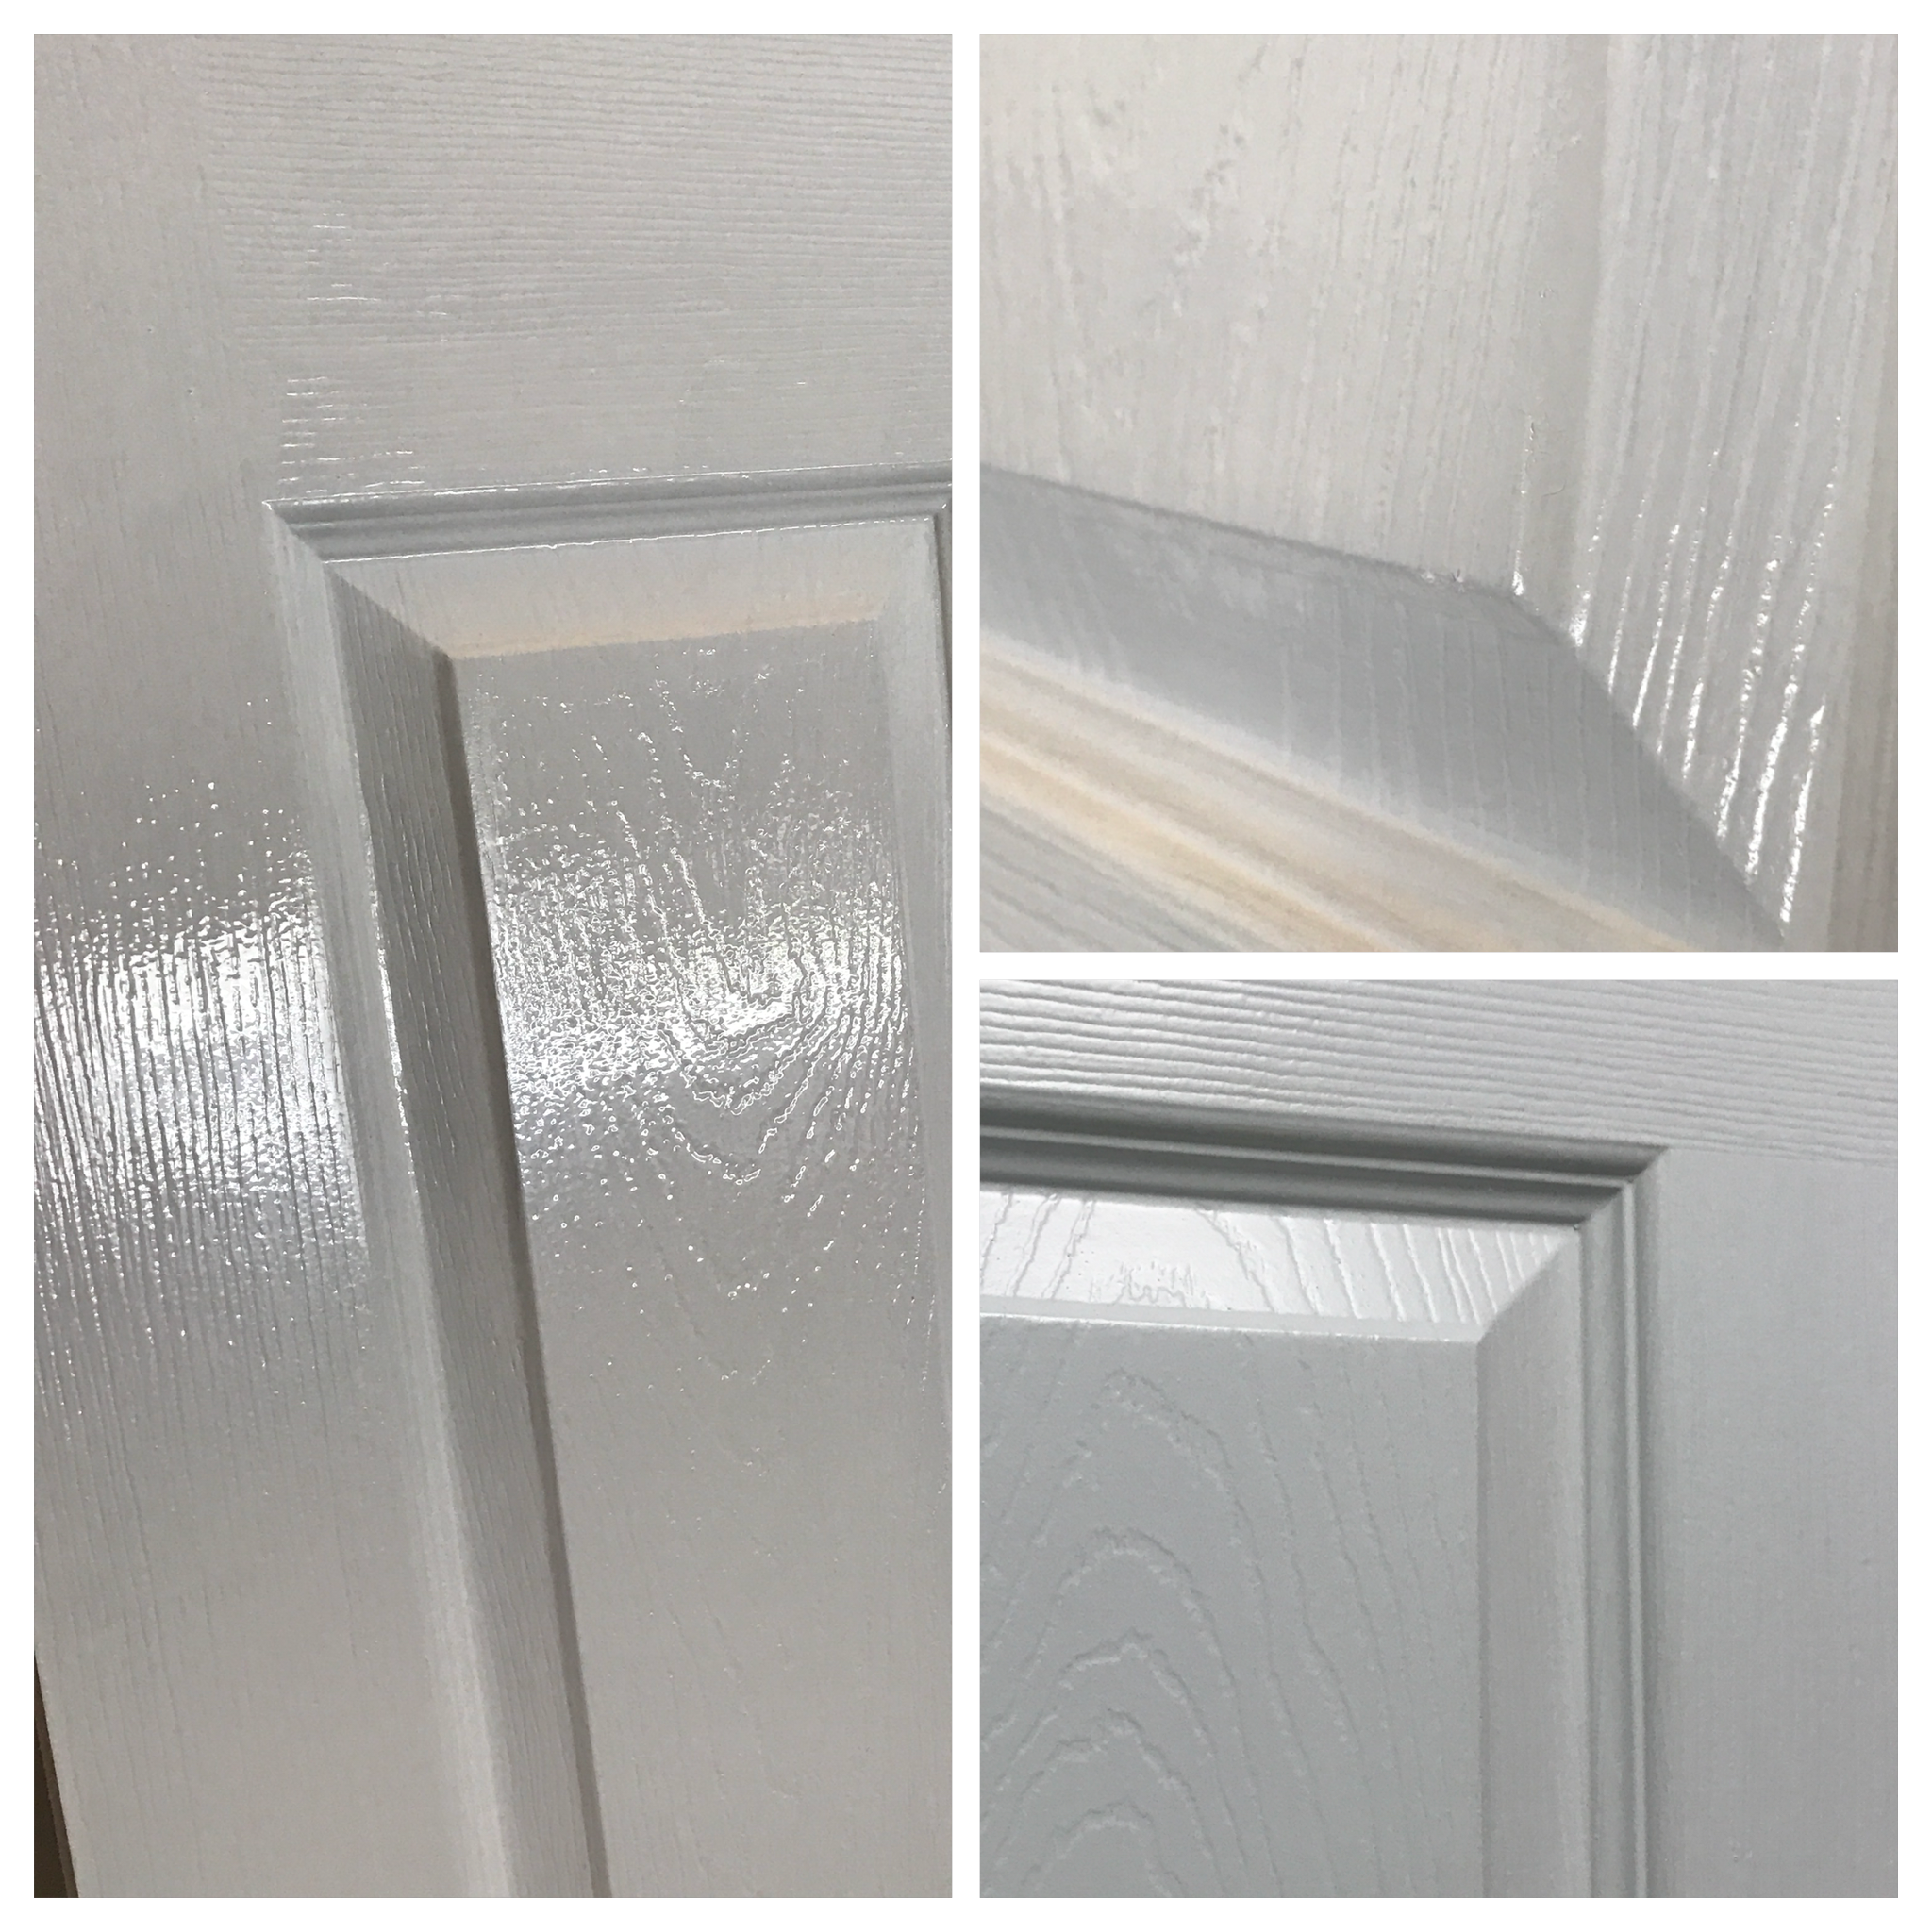 I Use Benjamin Moore Advance Exclusively For Wood Even